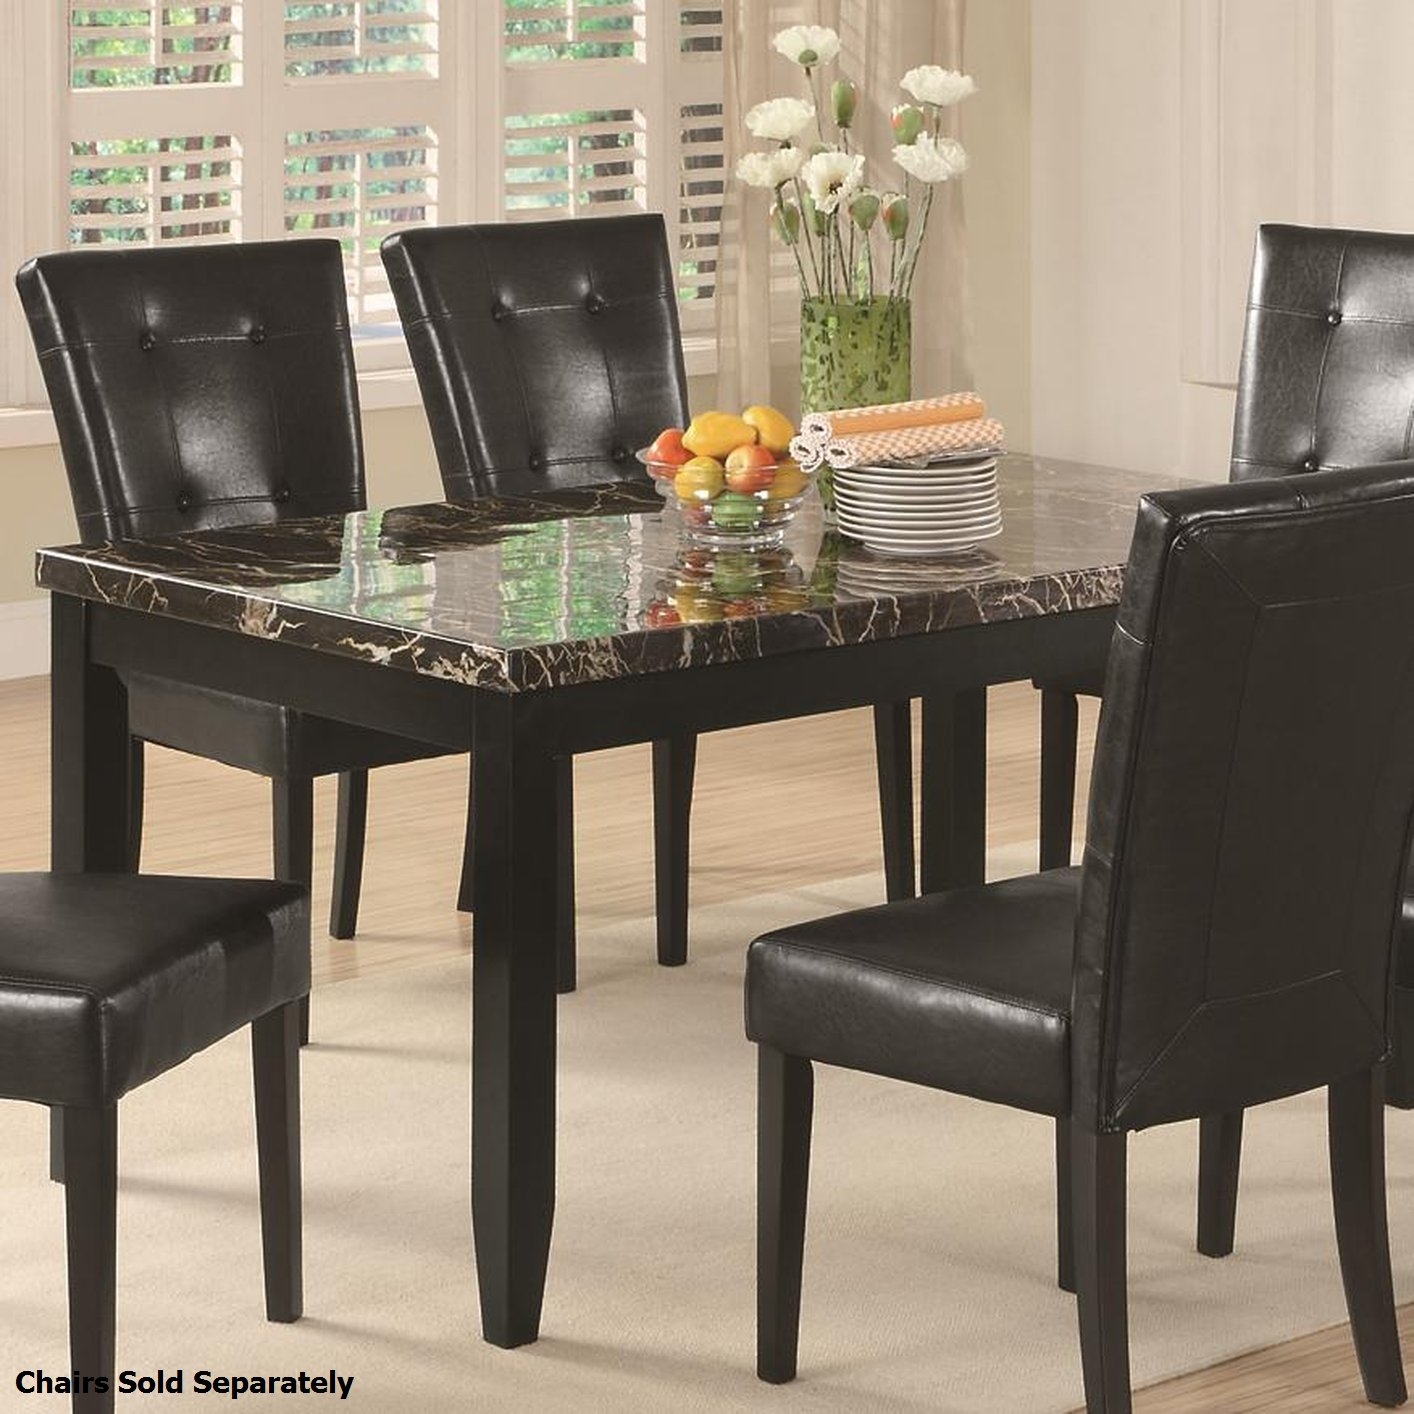 Coaster 102791 Black Marble Dining Table